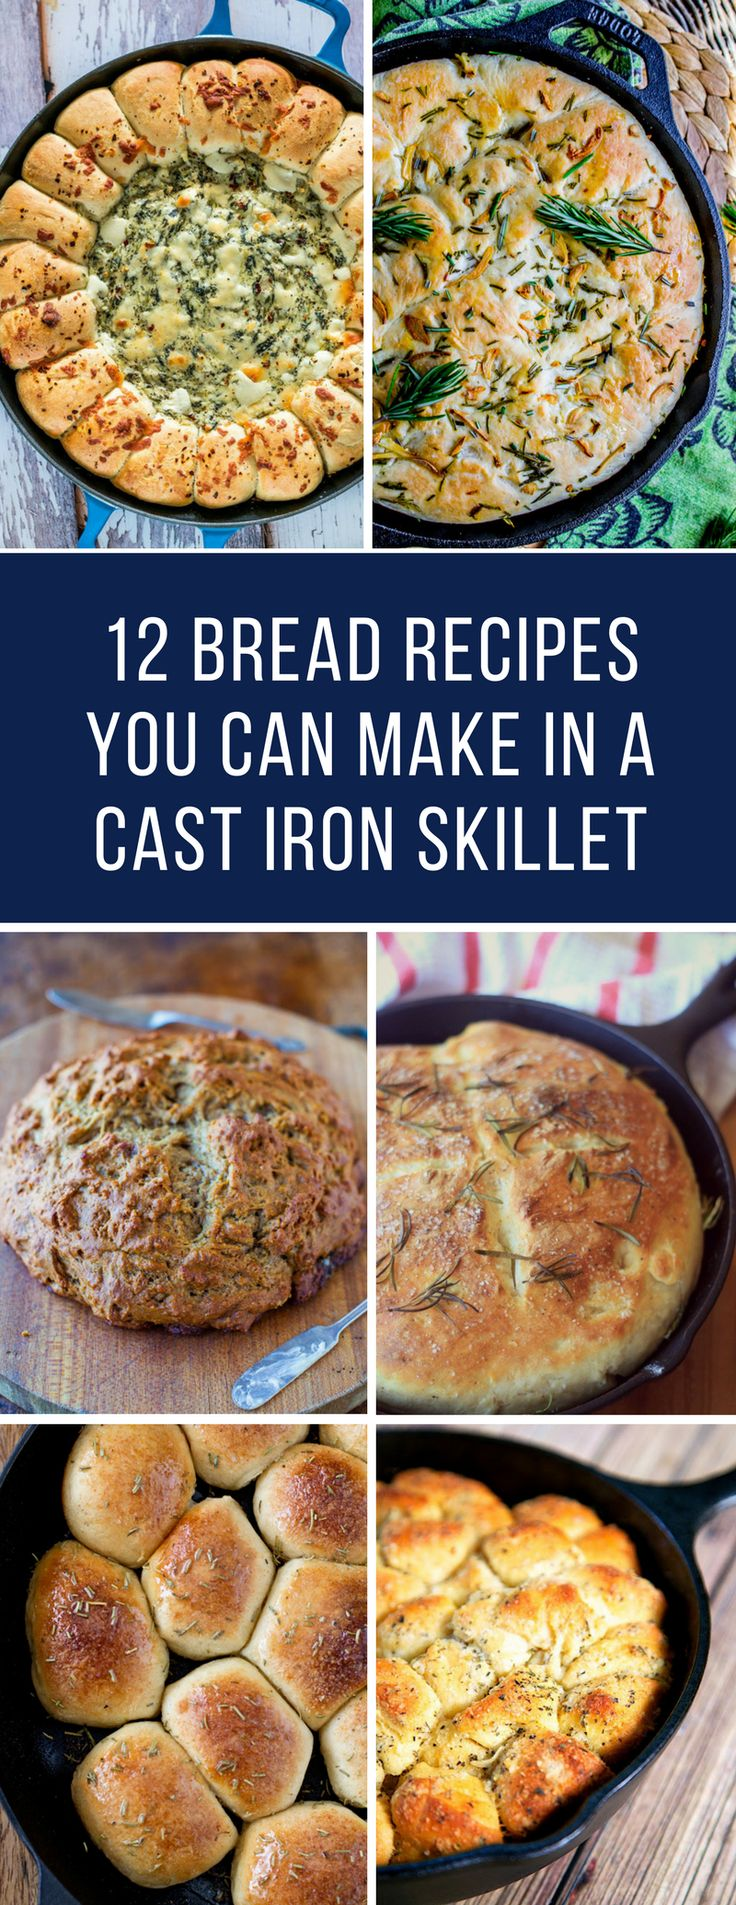 Cast Iron Skillet Bread Recipes - Oh my if you have never made bread in your cast iron pan before you need to check out these recipes -they smell and taste amazing! #castiron #skillet #bread #recipes